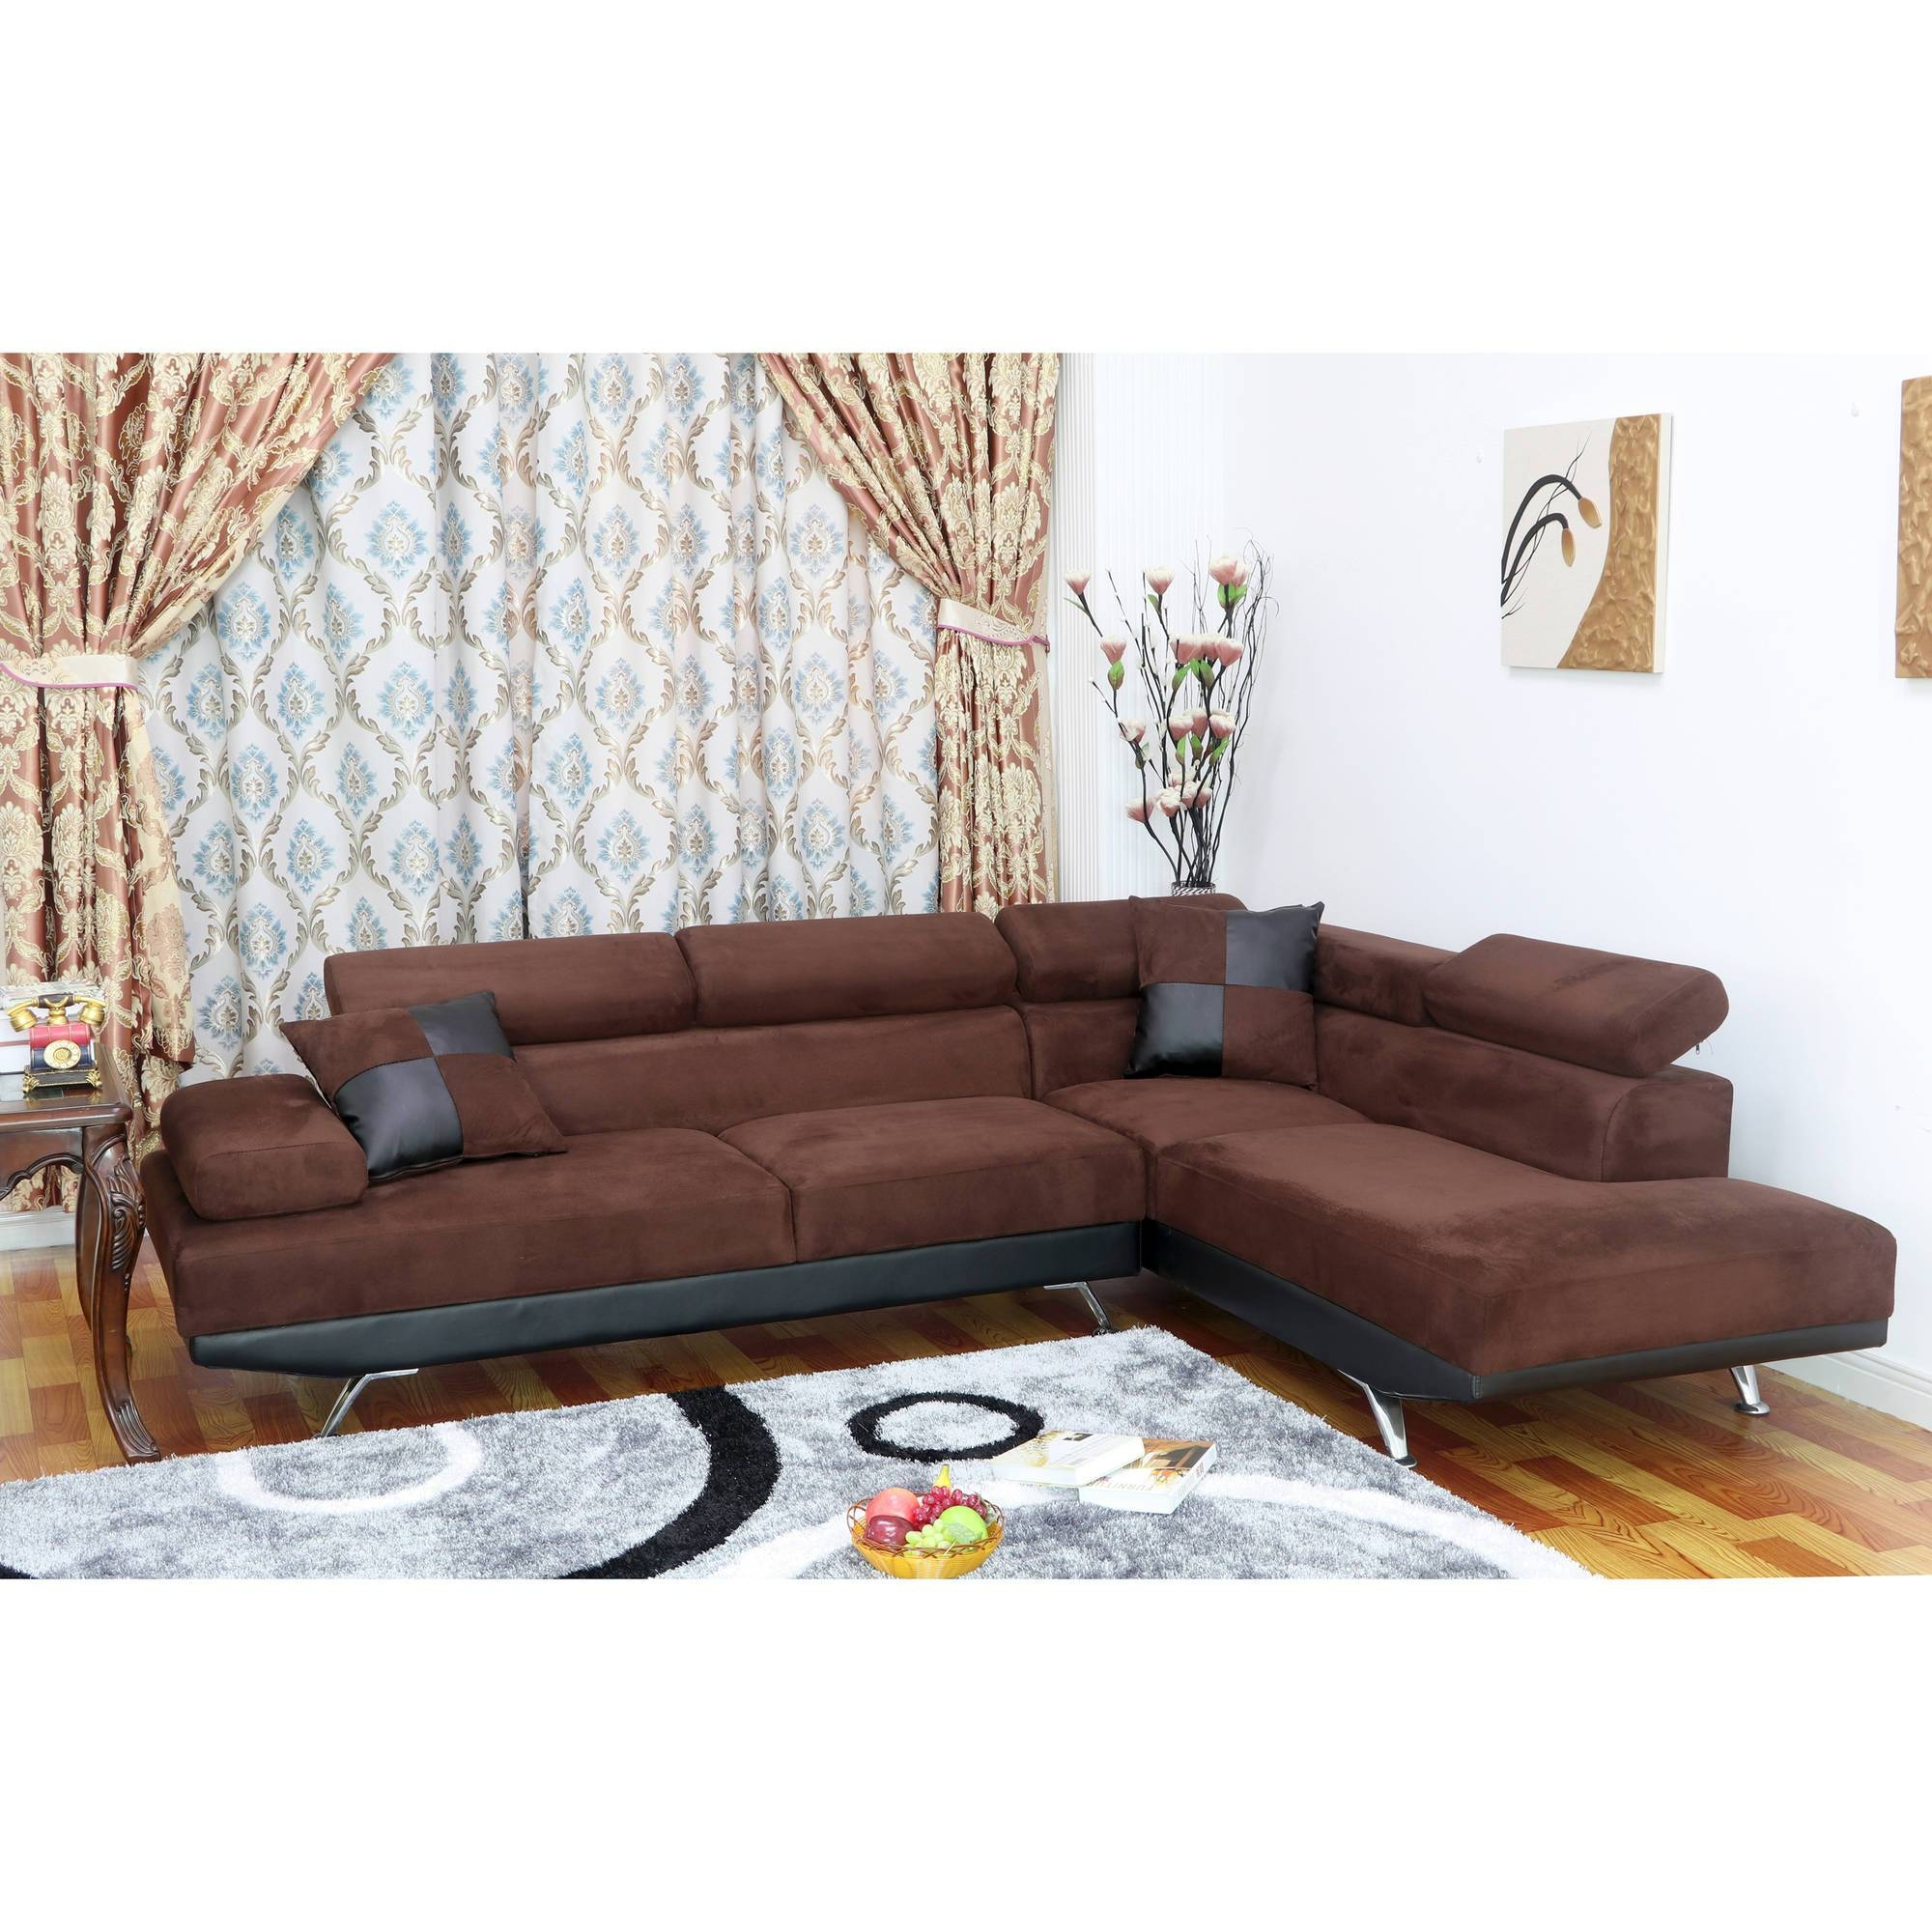 Ufe Sofia 2-Piece Microfiber Modern Right Facing Chaise Sectional within Chocolate Brown Microfiber Sectional Sofas (Image 15 of 15)